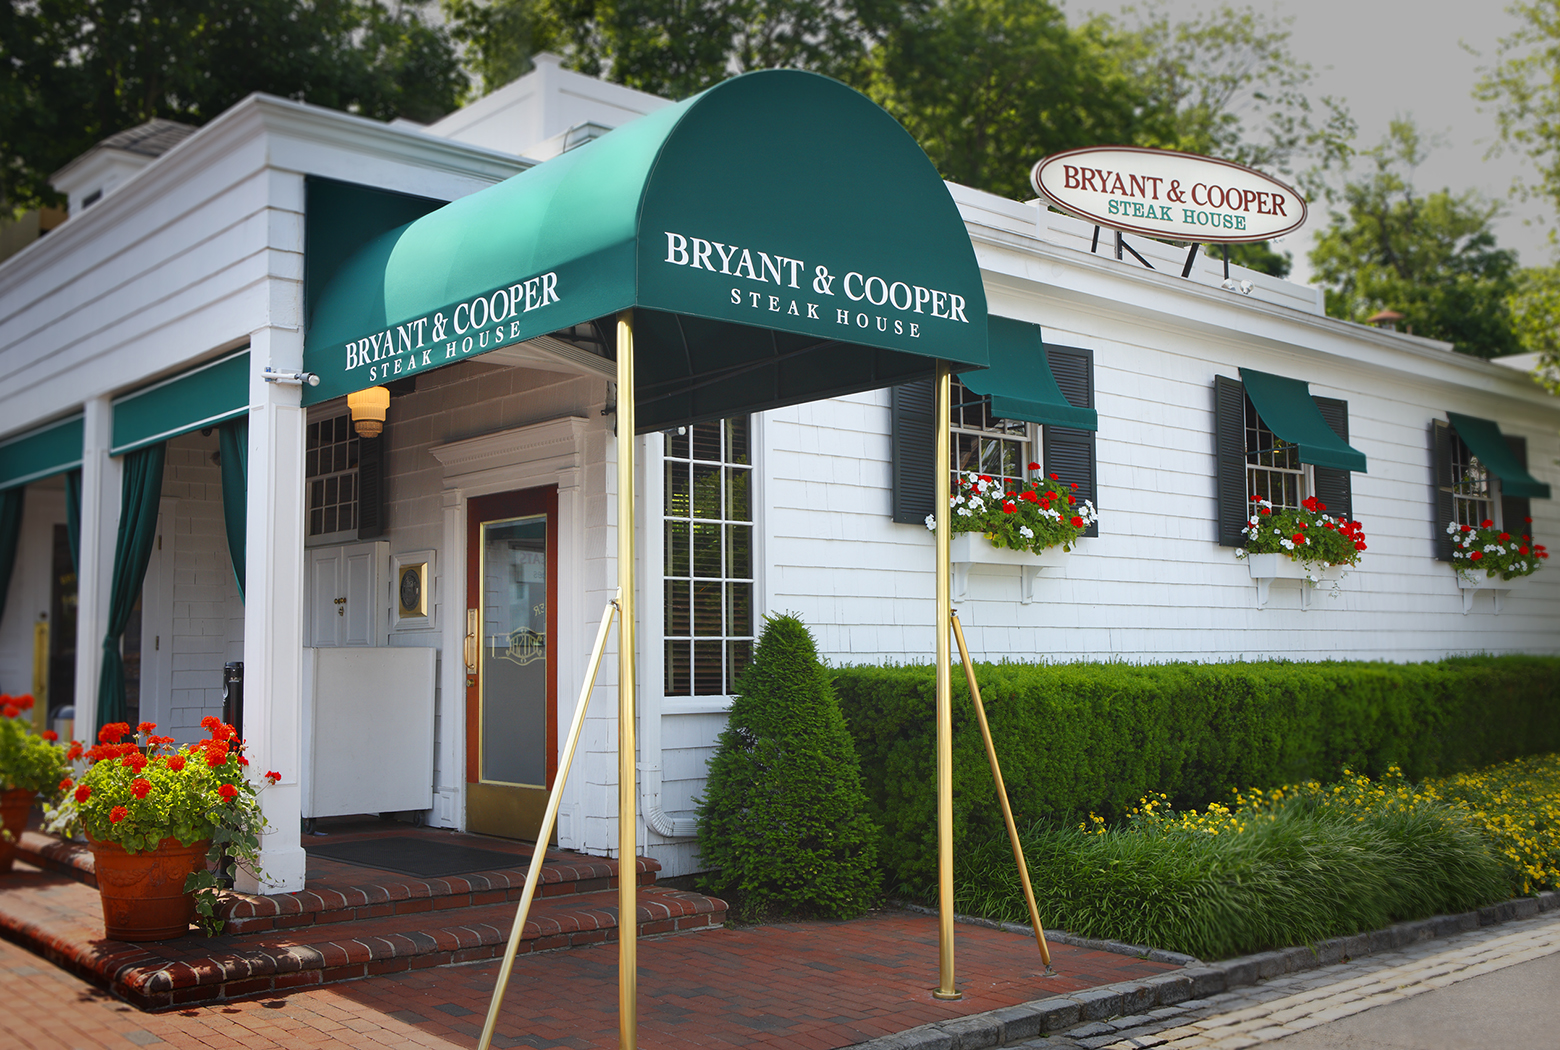 , Bryant & Cooper, AMERICAN ACADEMY OF HOSPITALITY SCIENCES